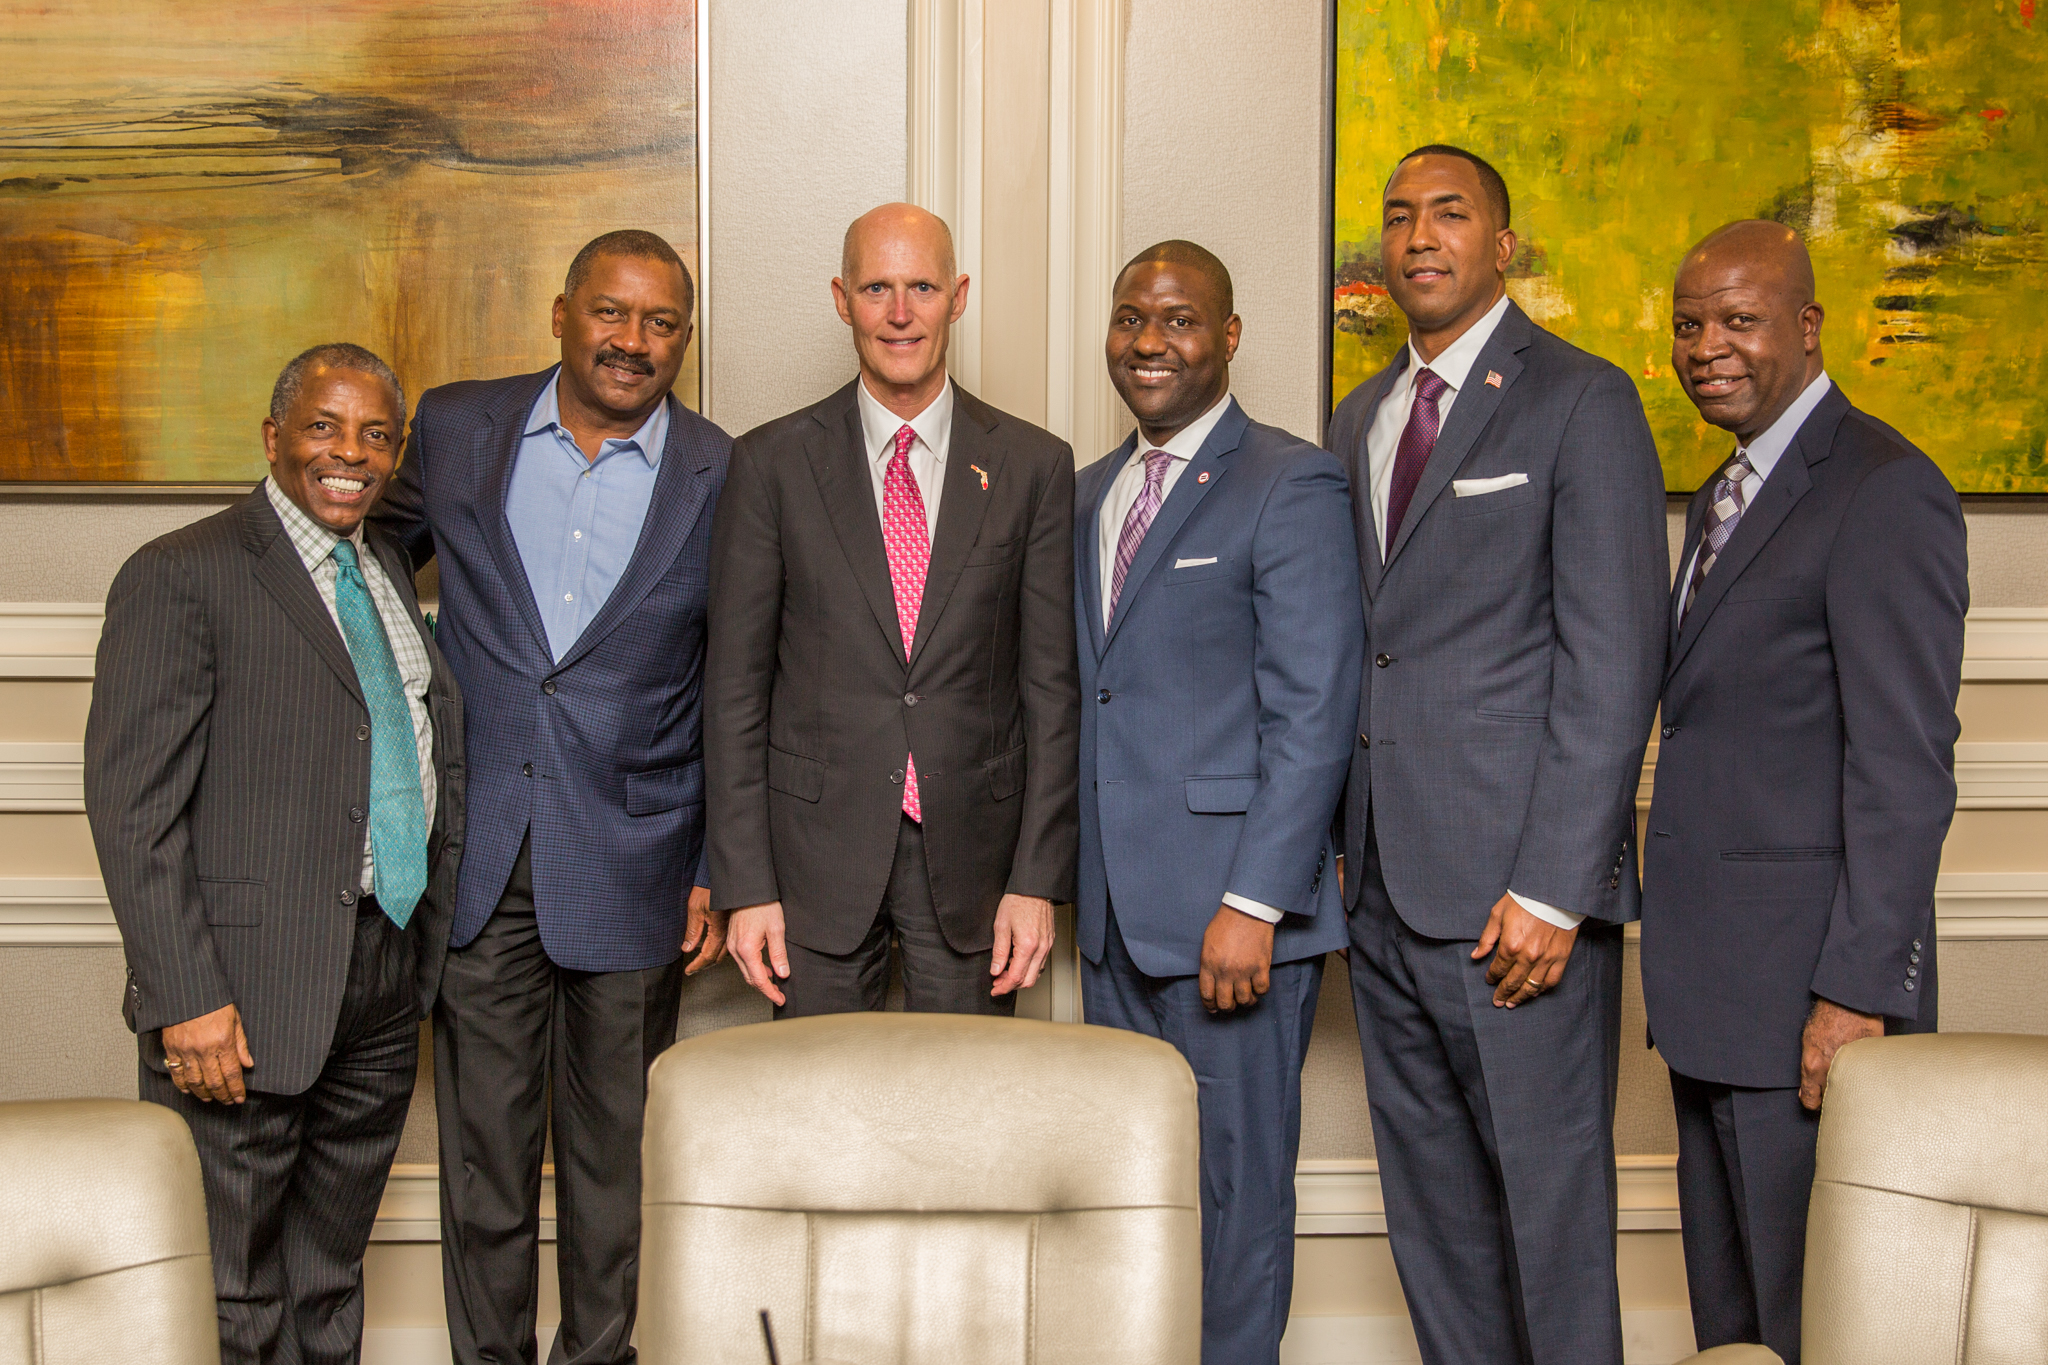 Image: Governor Rick Scott, Glenton Gilzean Jr., President and C.E.O. of the CFUL, Wesley Harris, Chairman, CFUL Board of Directors; Terry Prather, CEO, Seaworld (Retired); Larry Mills, Past President, African–American Christian Clergy Coalition; Kevin Edmunds; Deputy Chief Administrative Officer, City of Orlando and Leonard Spencer.